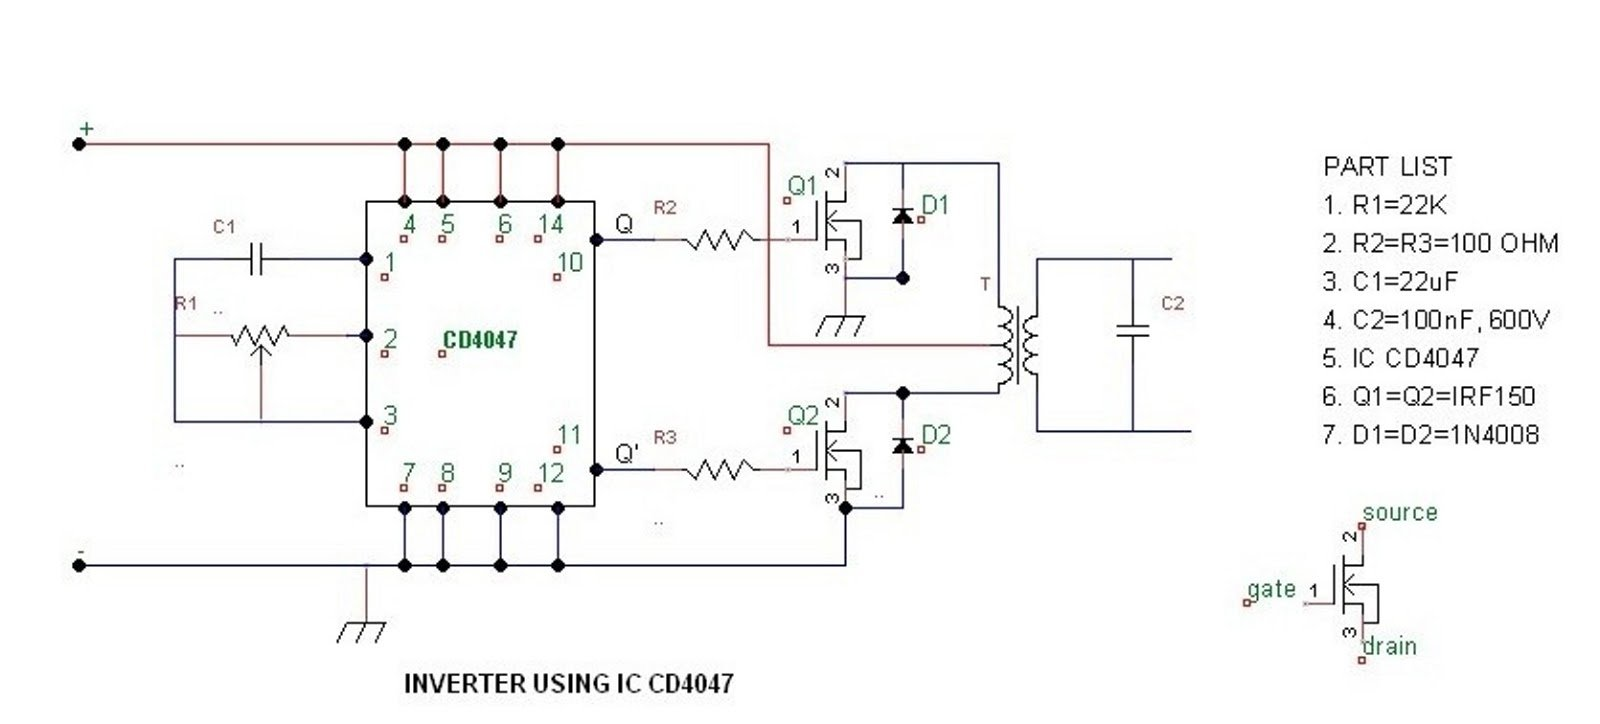 Transistor Dc To Ac Power Inverter Circuit Diagram Electrical Simple 100 Watt 500 Schematic